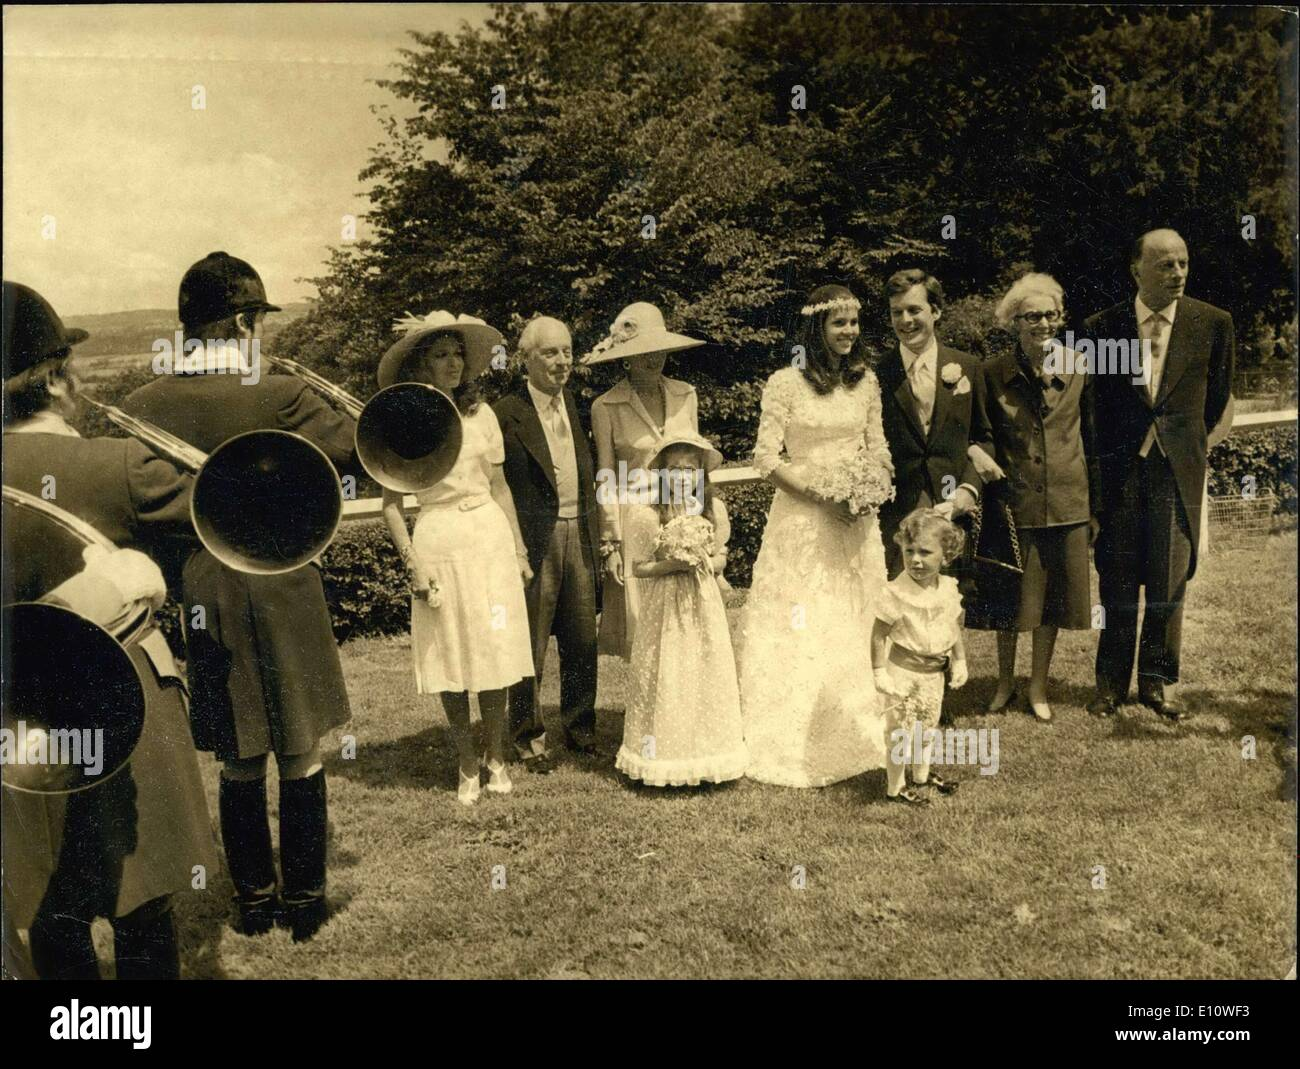 Jun. 29, 1974 - Marriage of David de Rothschild and Olympia Aldobrandini - Stock Image